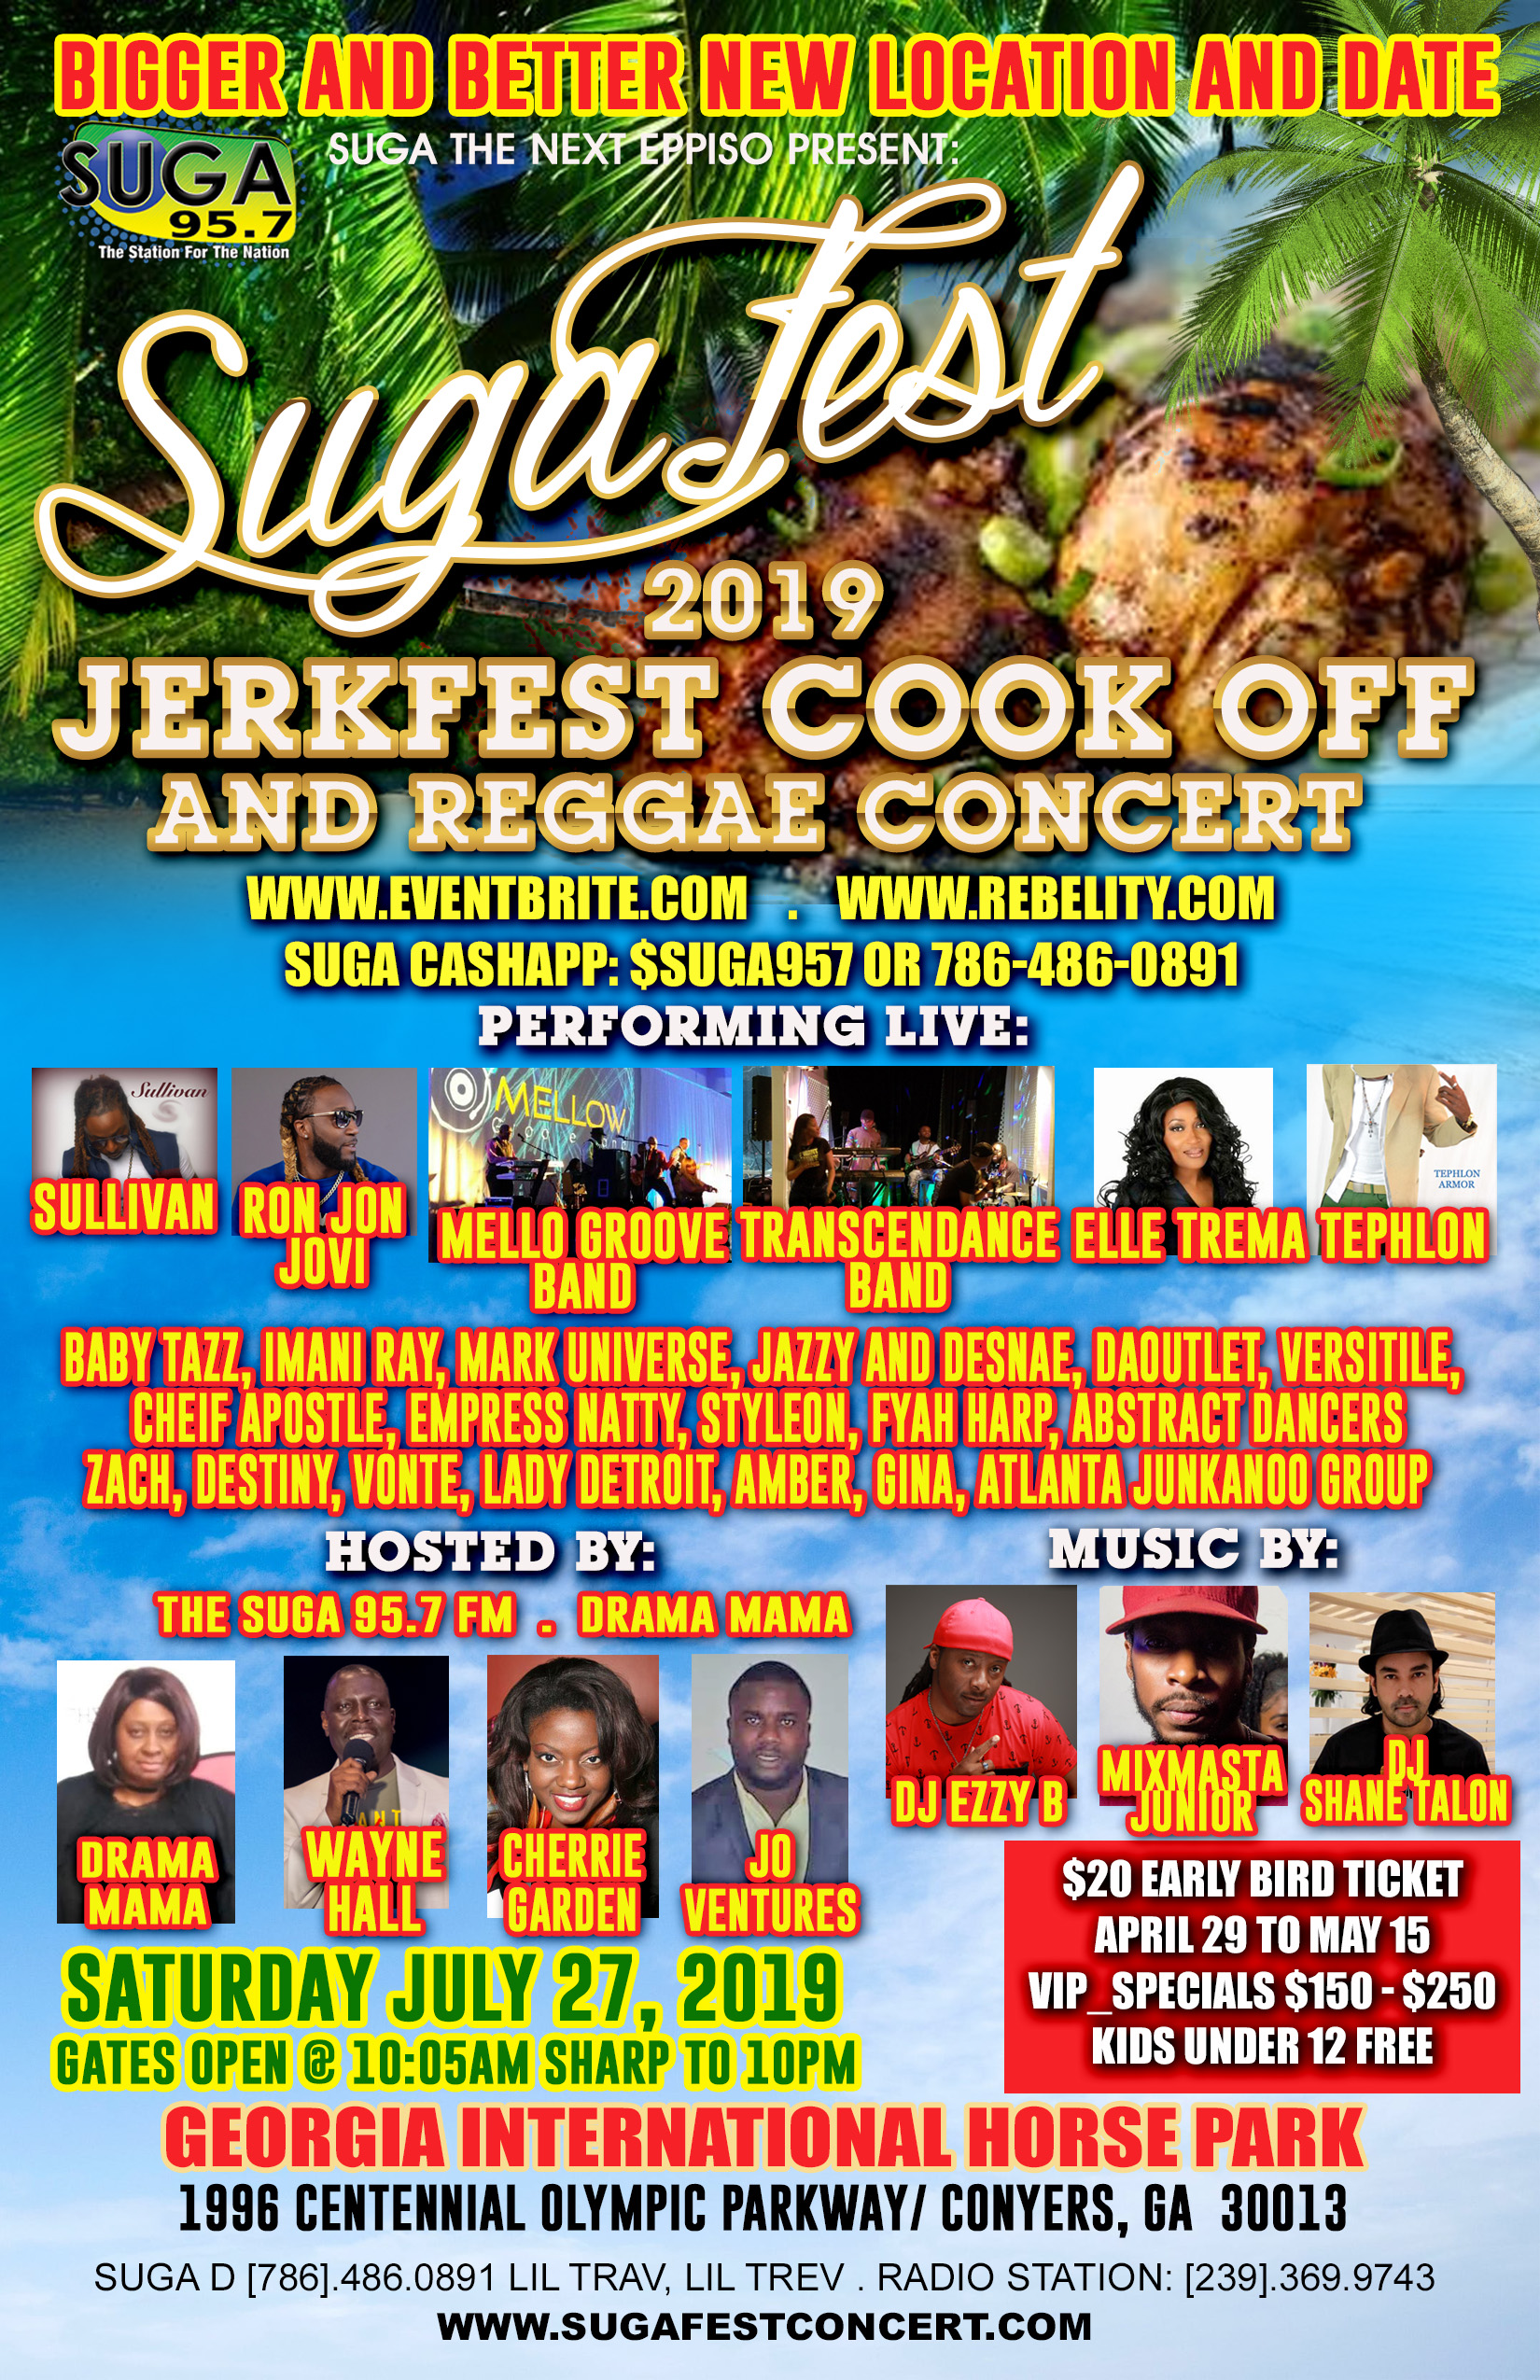 Vendor Application for Sugafest JerkFest